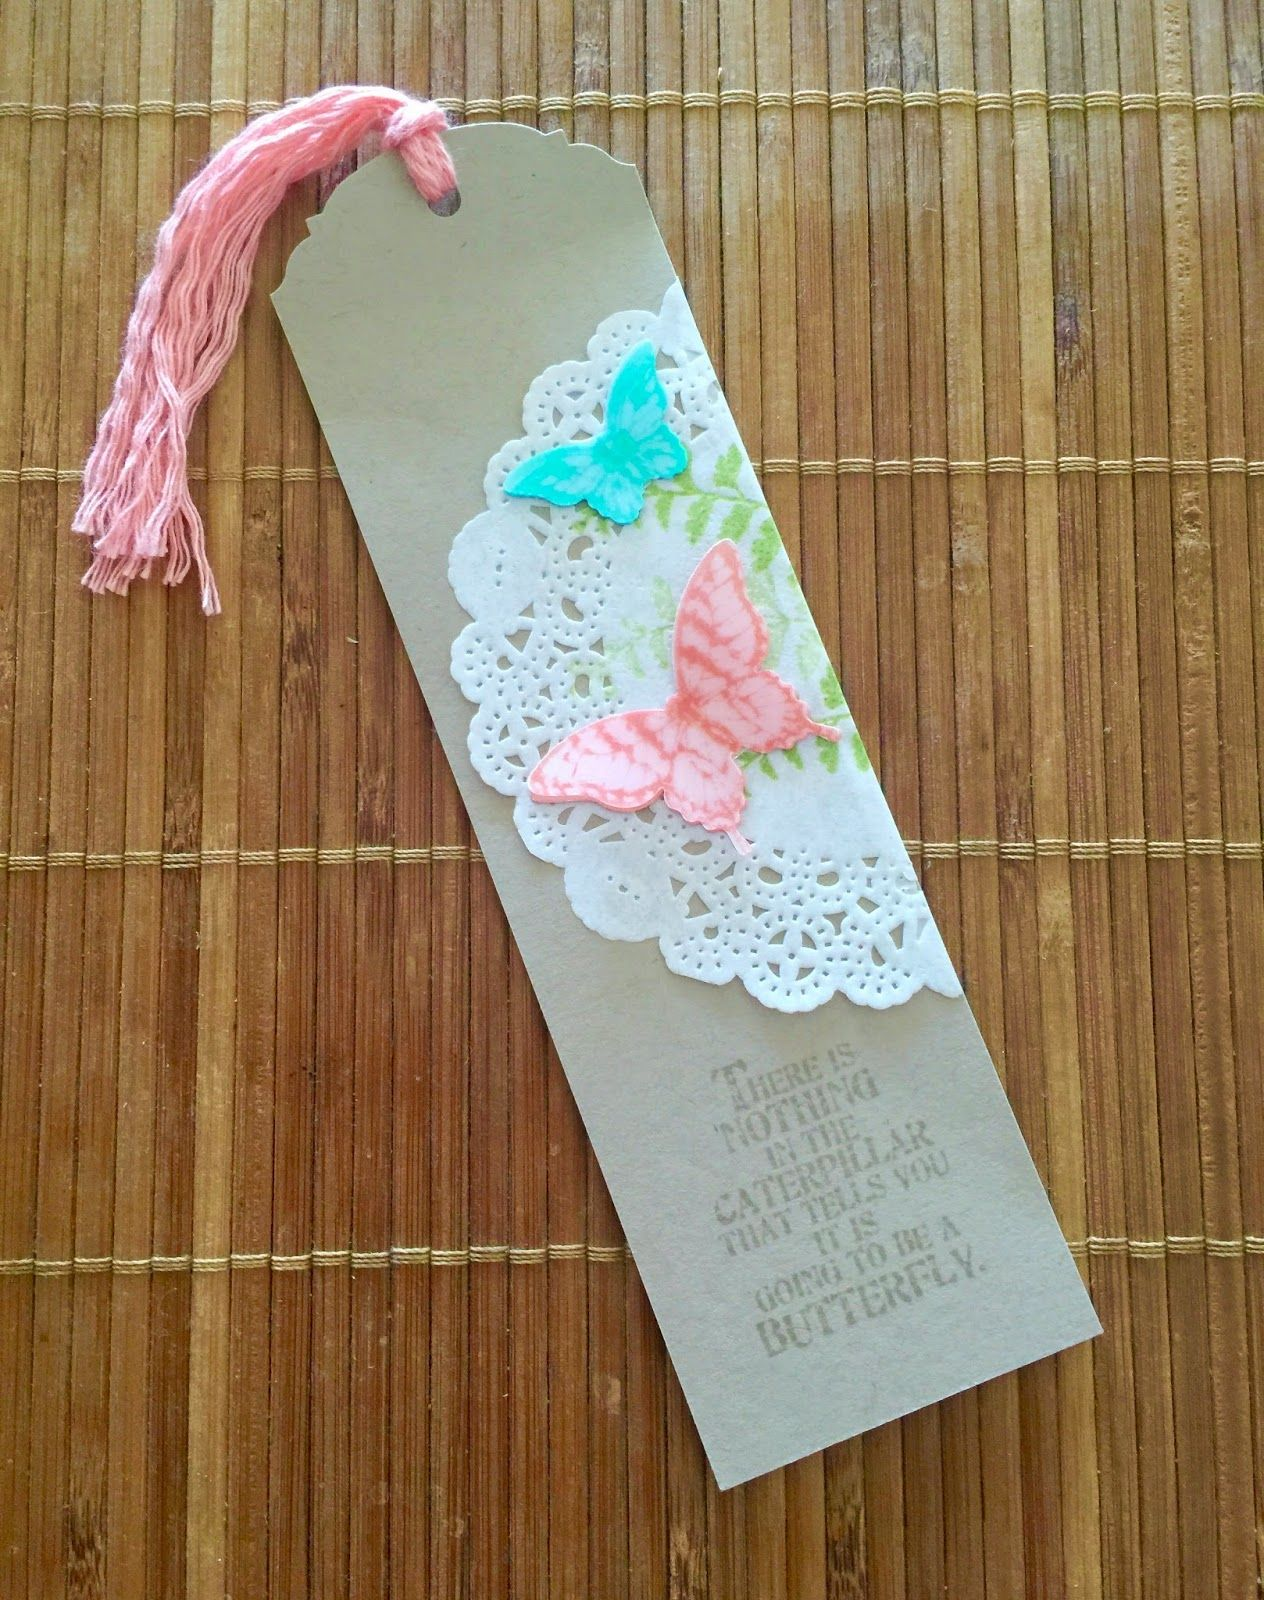 Stampin Up convention swap